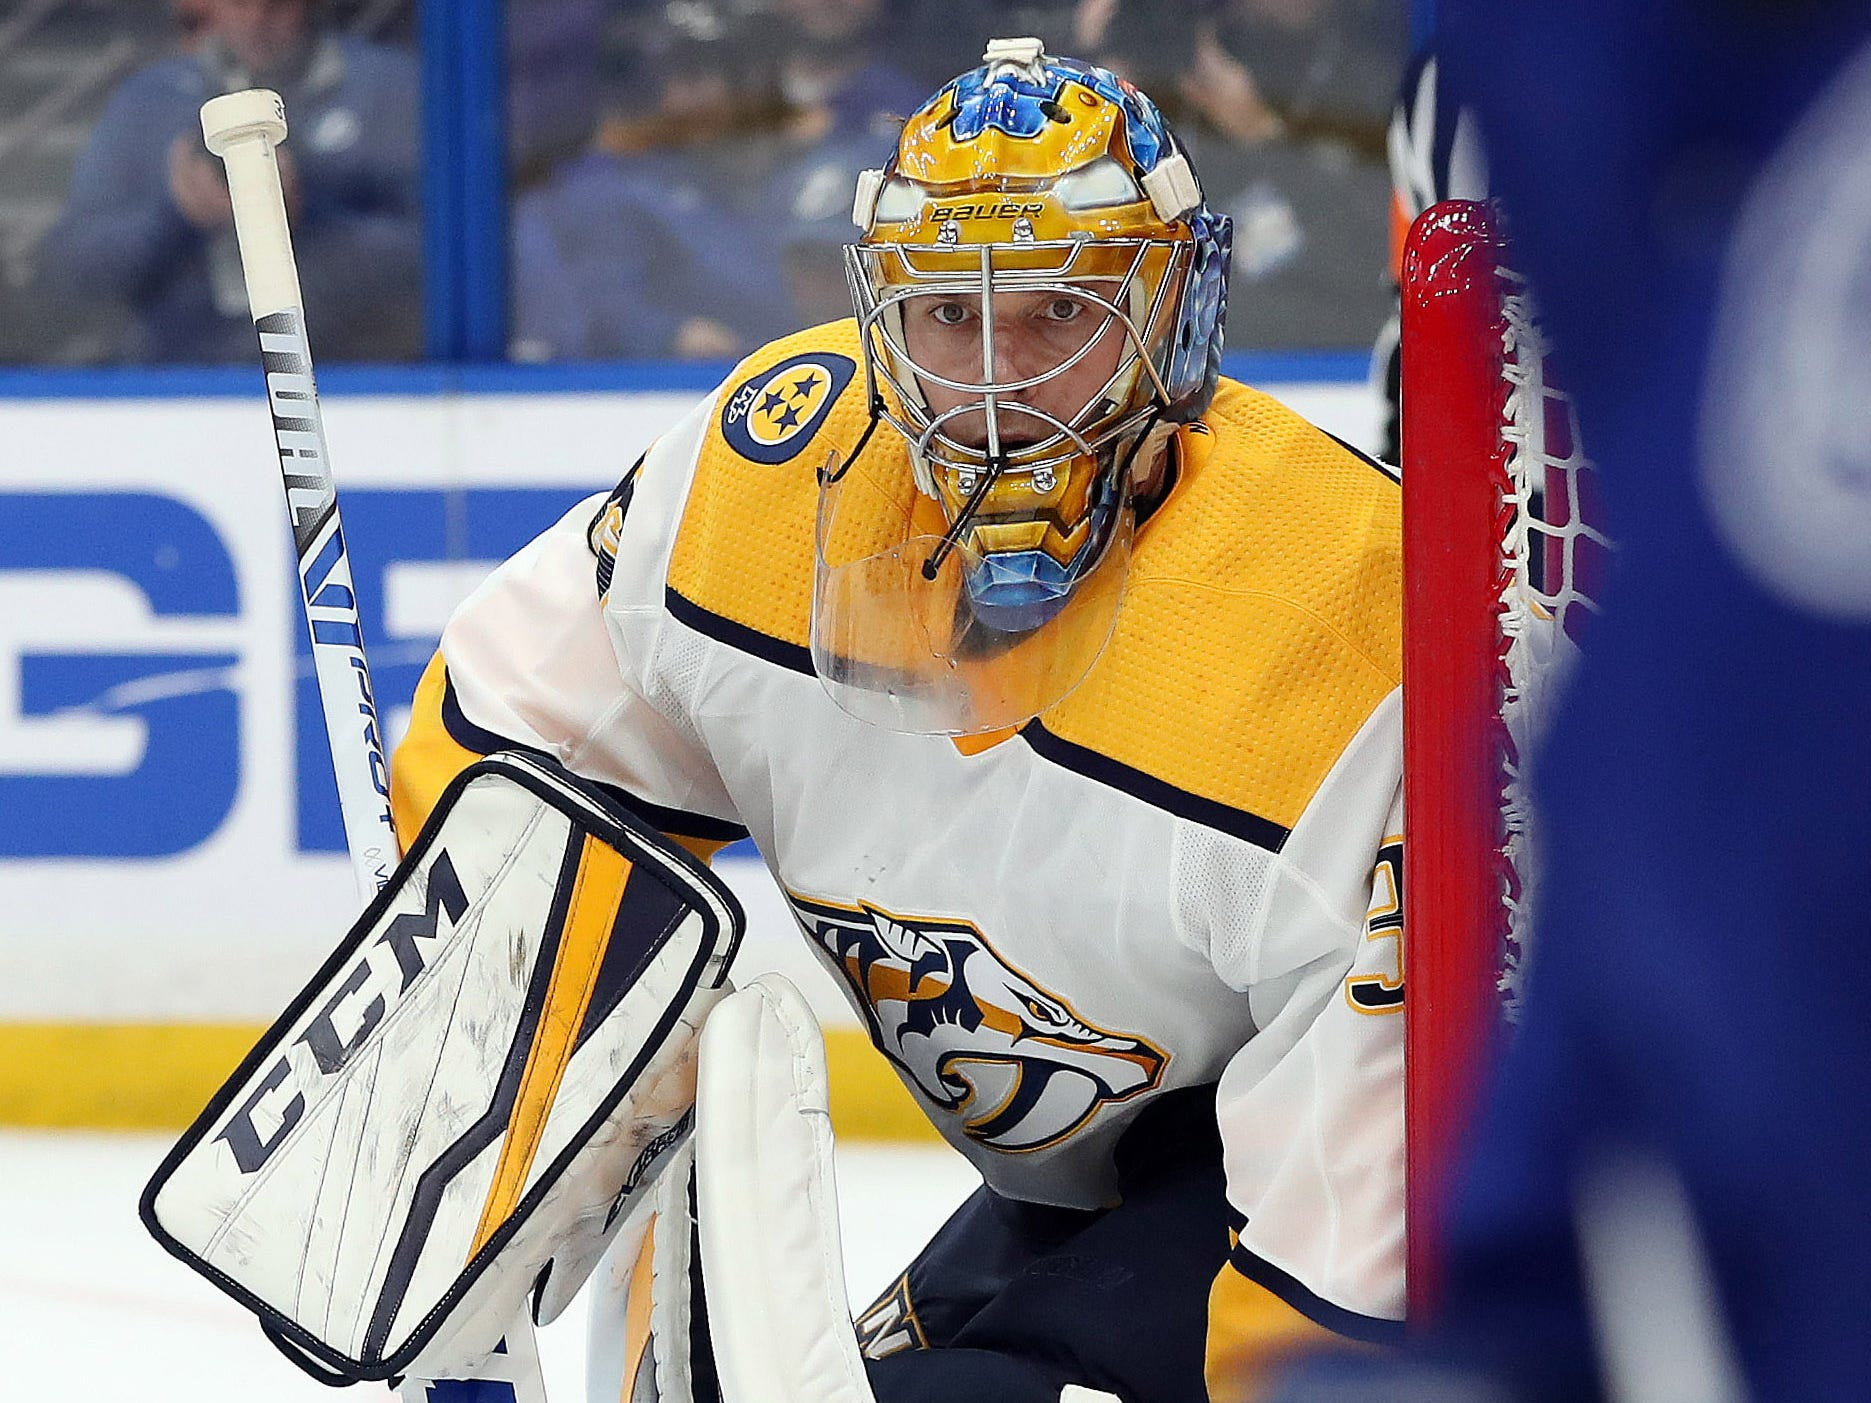 Nashville Predators goaltender Pekka Rinne (35) looks on against the Tampa Bay Lightning during the second period at Amalie Arena.